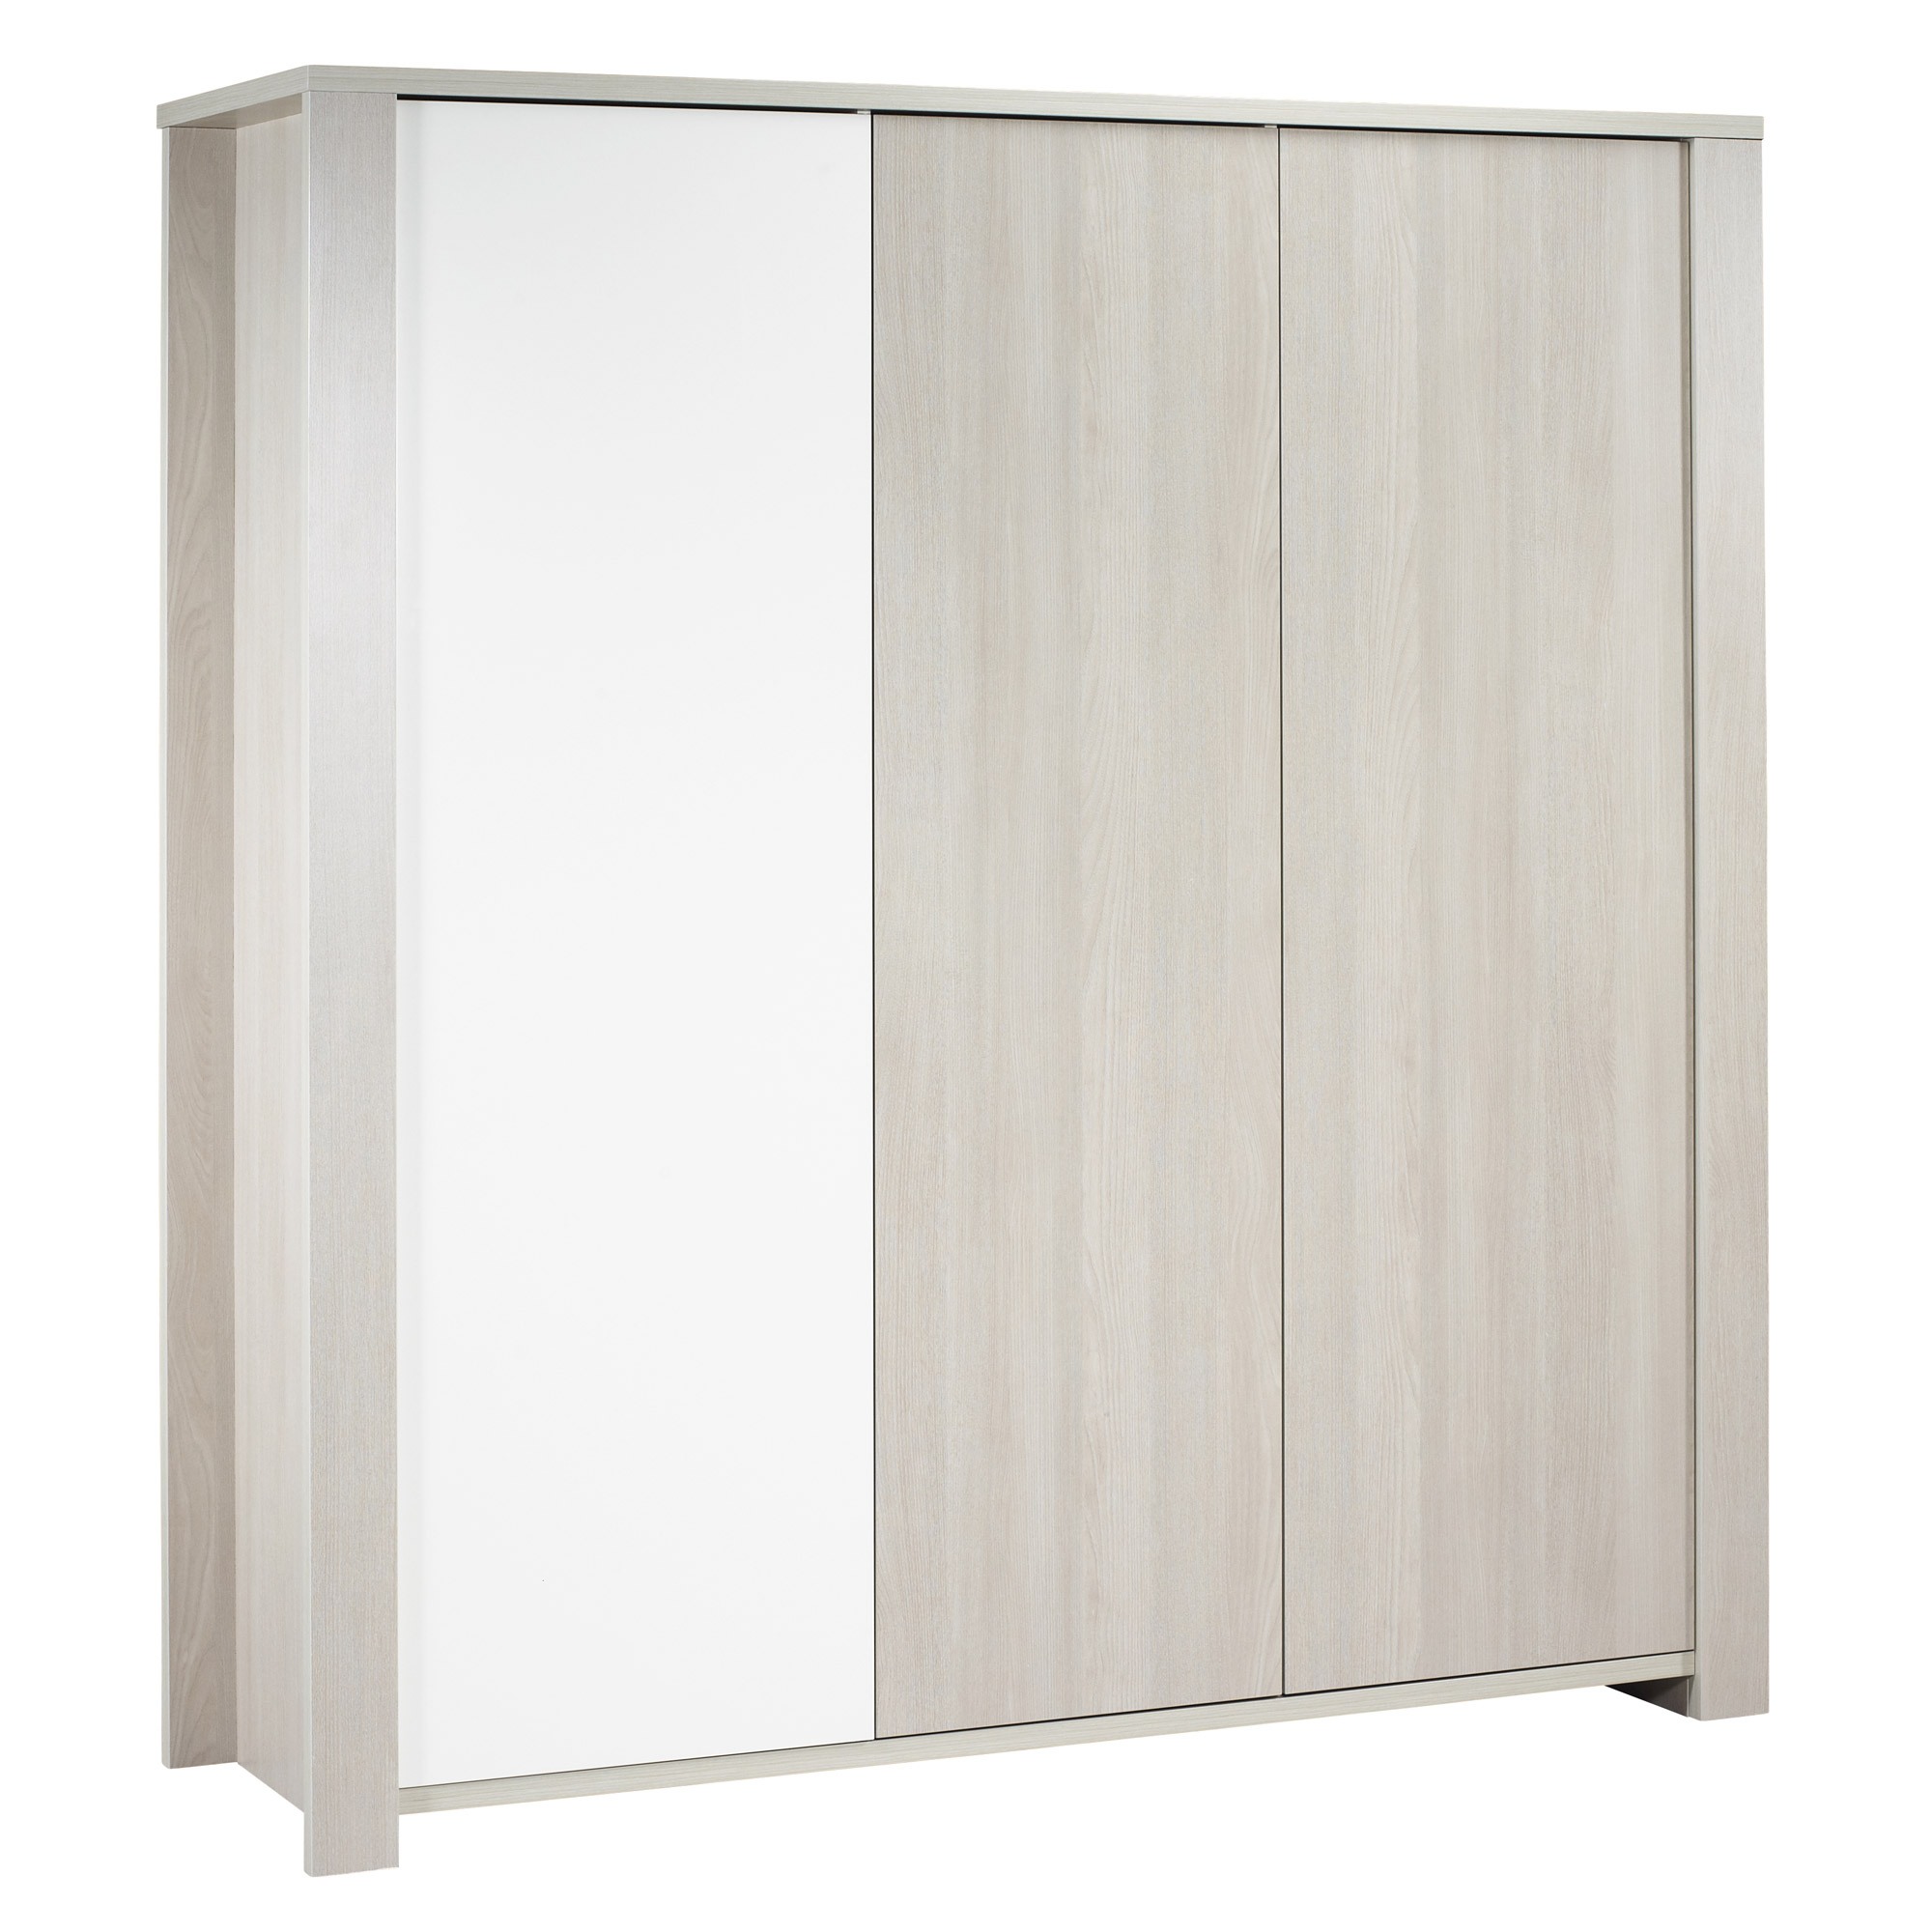 New Opale armoire 3 portes